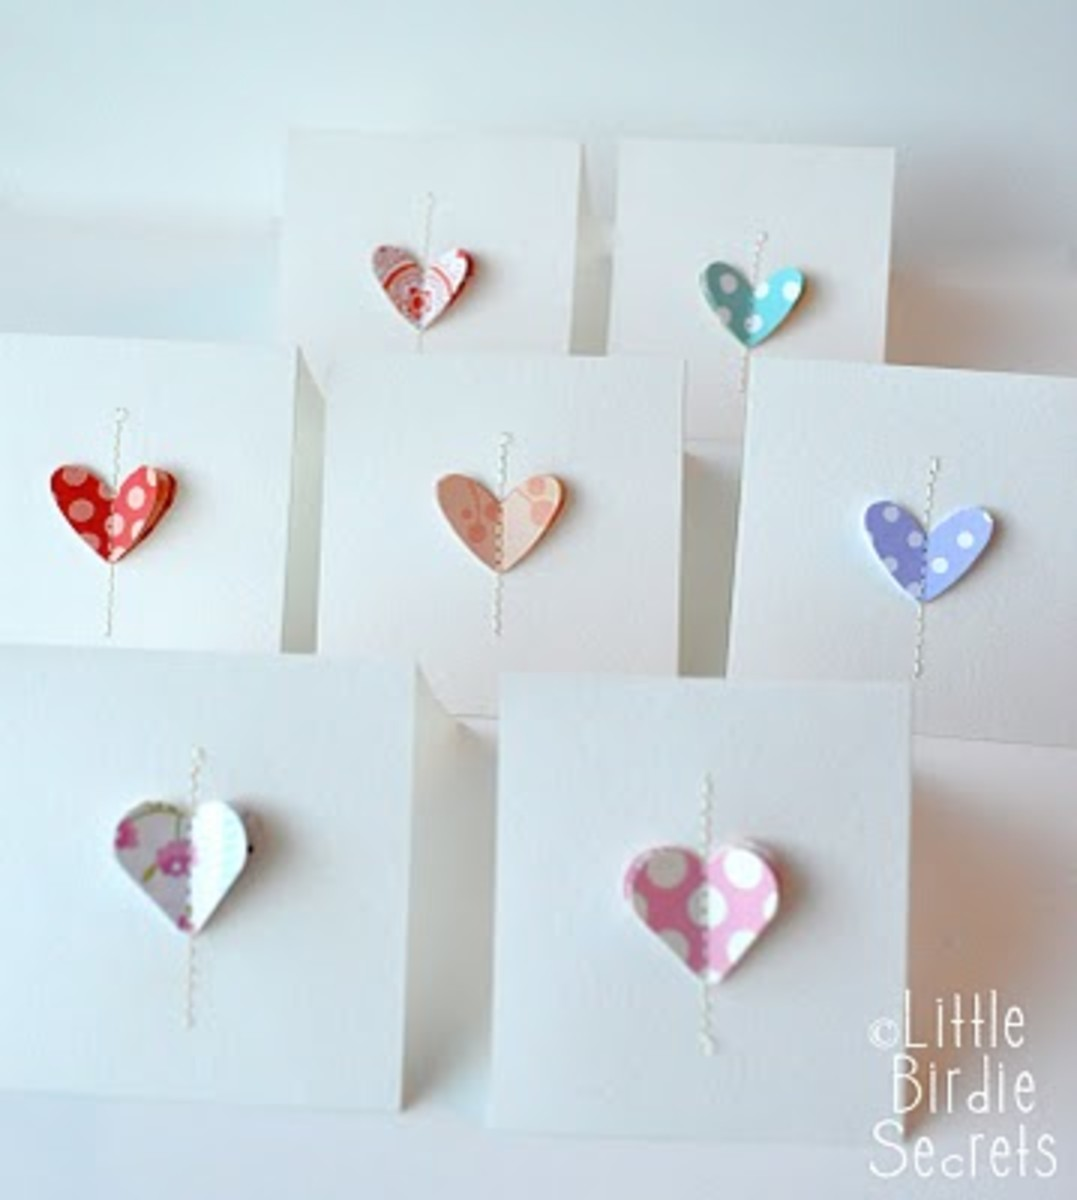 Handmade Valentines Day Card Crafts, Great for Kids to Make